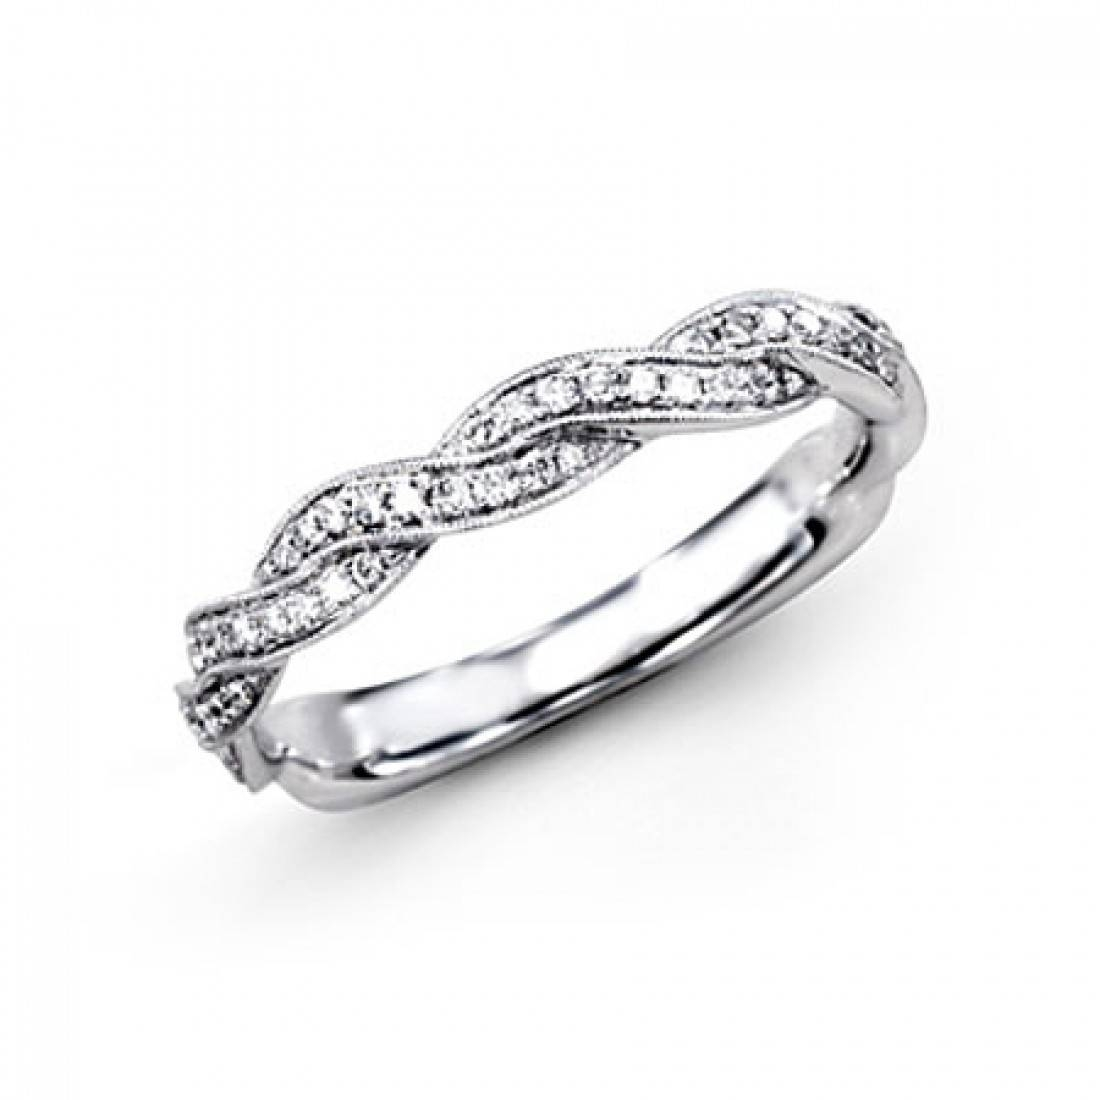 Simon G Platinum Braided Collection Diamond Wedding Band | Windsor For Braided Wedding Bands (View 3 of 15)